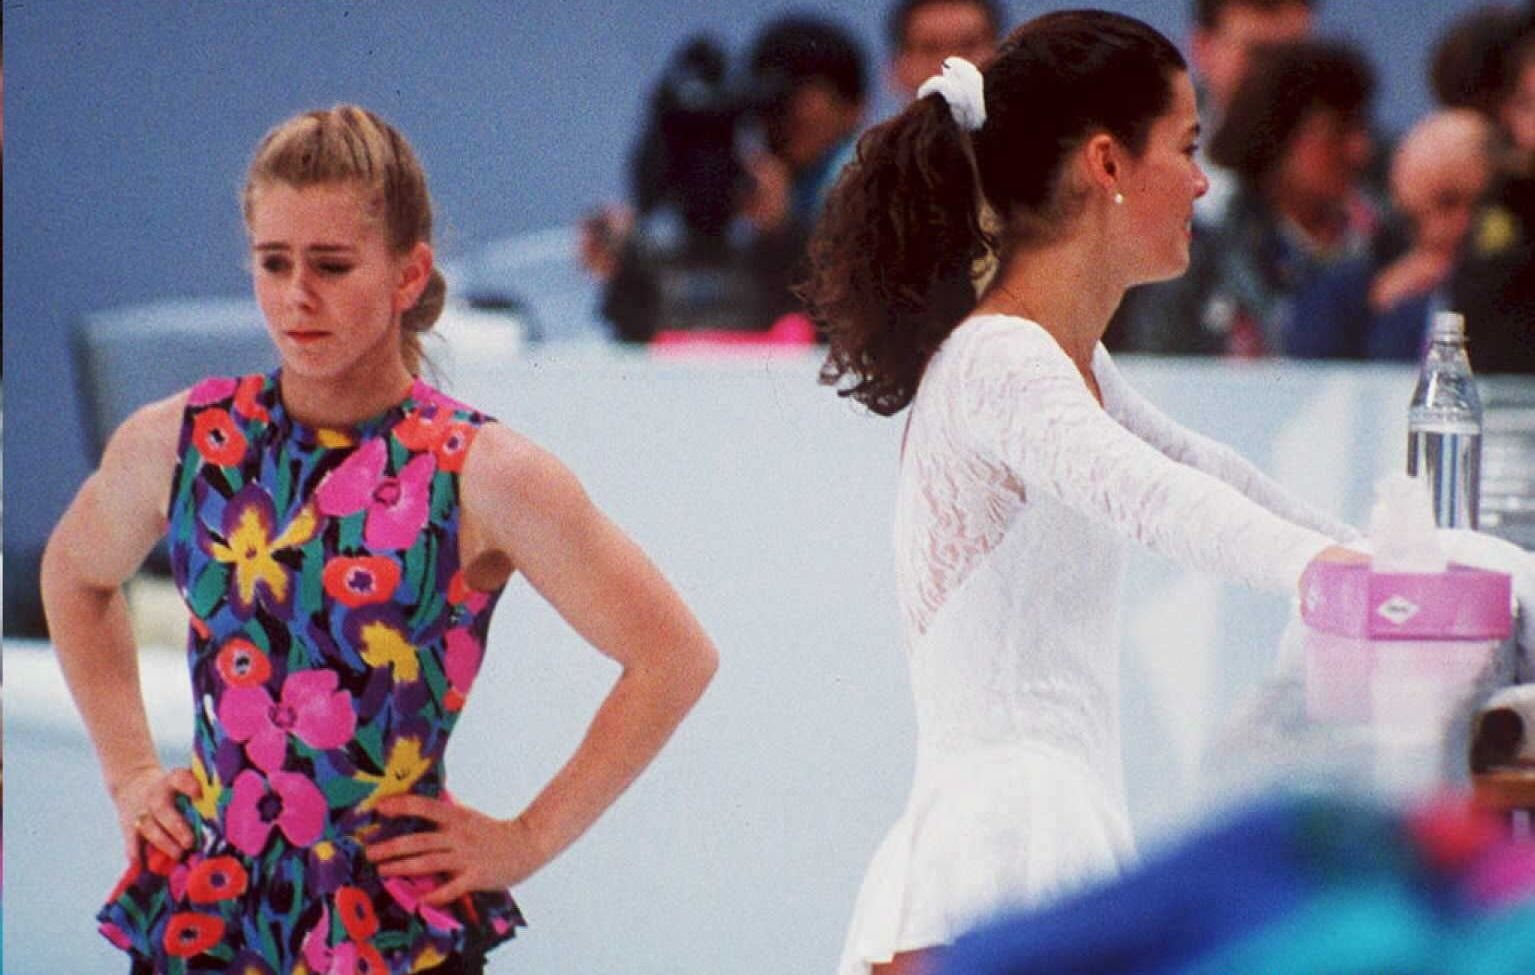 Quarryville native Johnny Weir will not forgive Tonya Harding